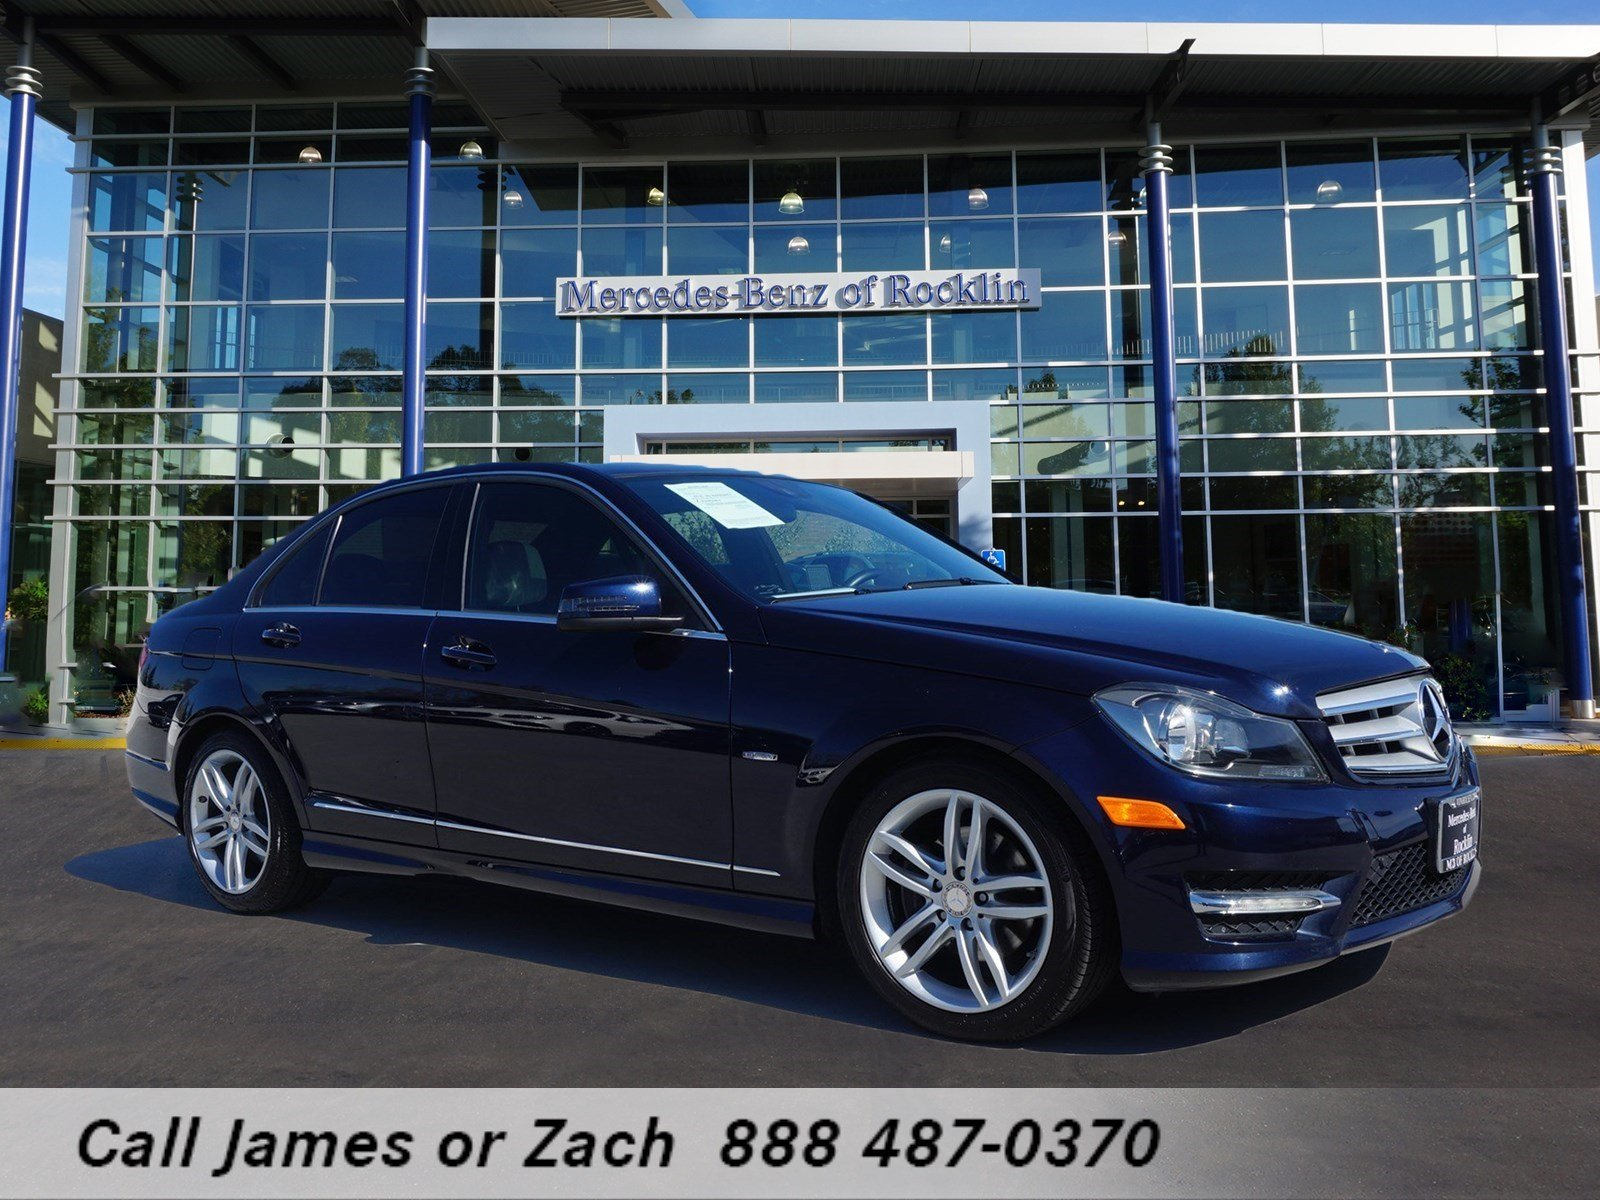 Pre owned 2012 mercedes benz c class c250 sport 4dr car in for Mercedes benz c250 performance upgrades